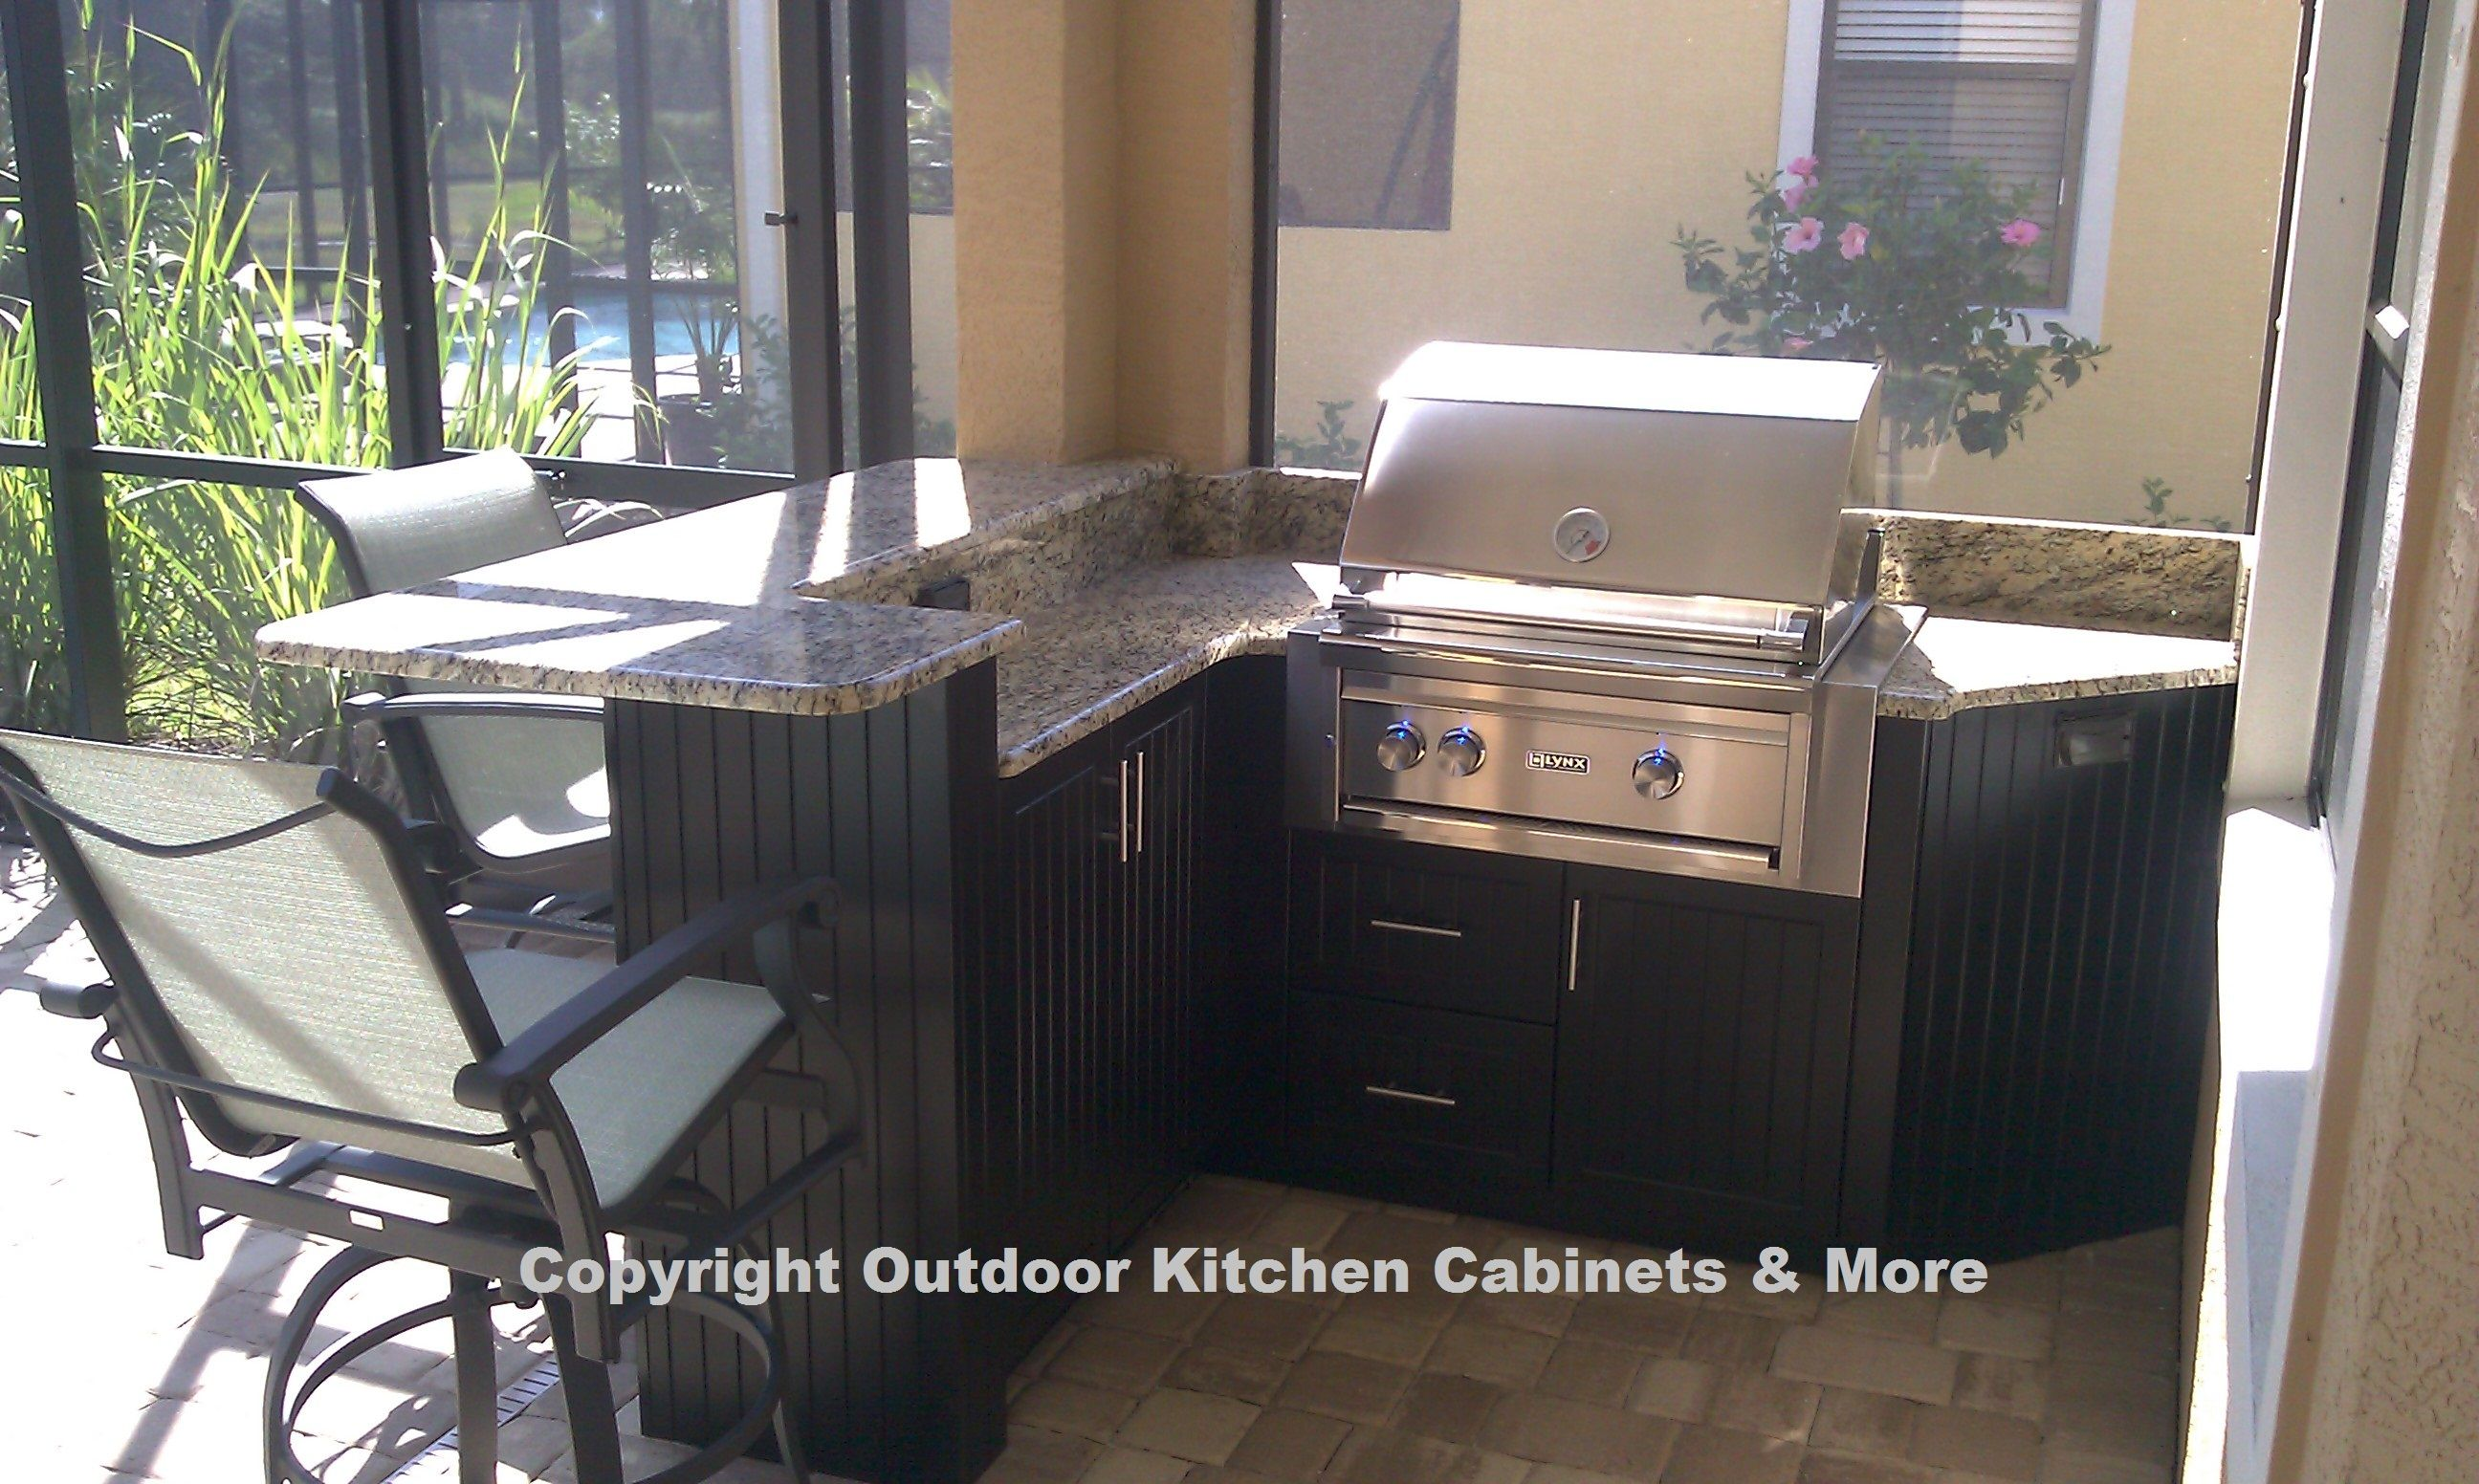 Image Detail For Outdoor Kitchen Photo Gallery Outdoor Kitchen Cabinets More Outdoor Kitchen Outdoor Kitchen Cabinets Kitchen Photos